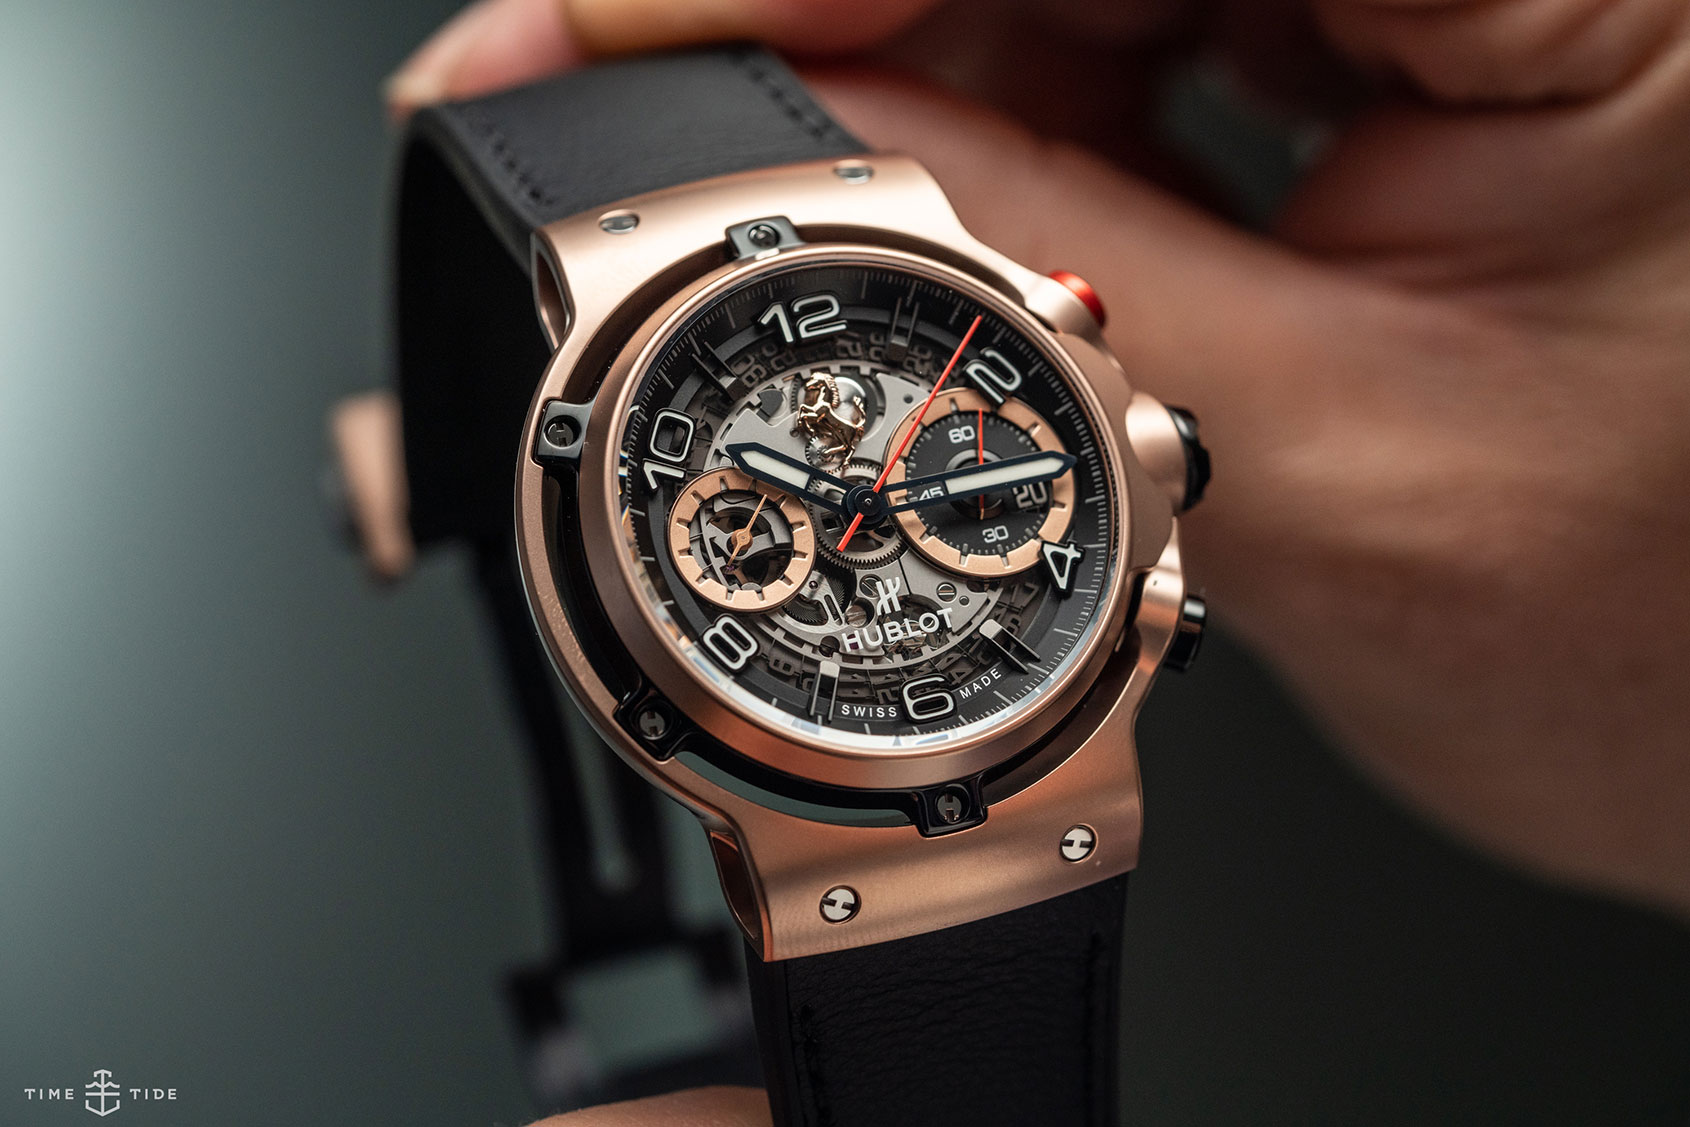 Video Hublot S Prancing Pony Time And Tide Watches